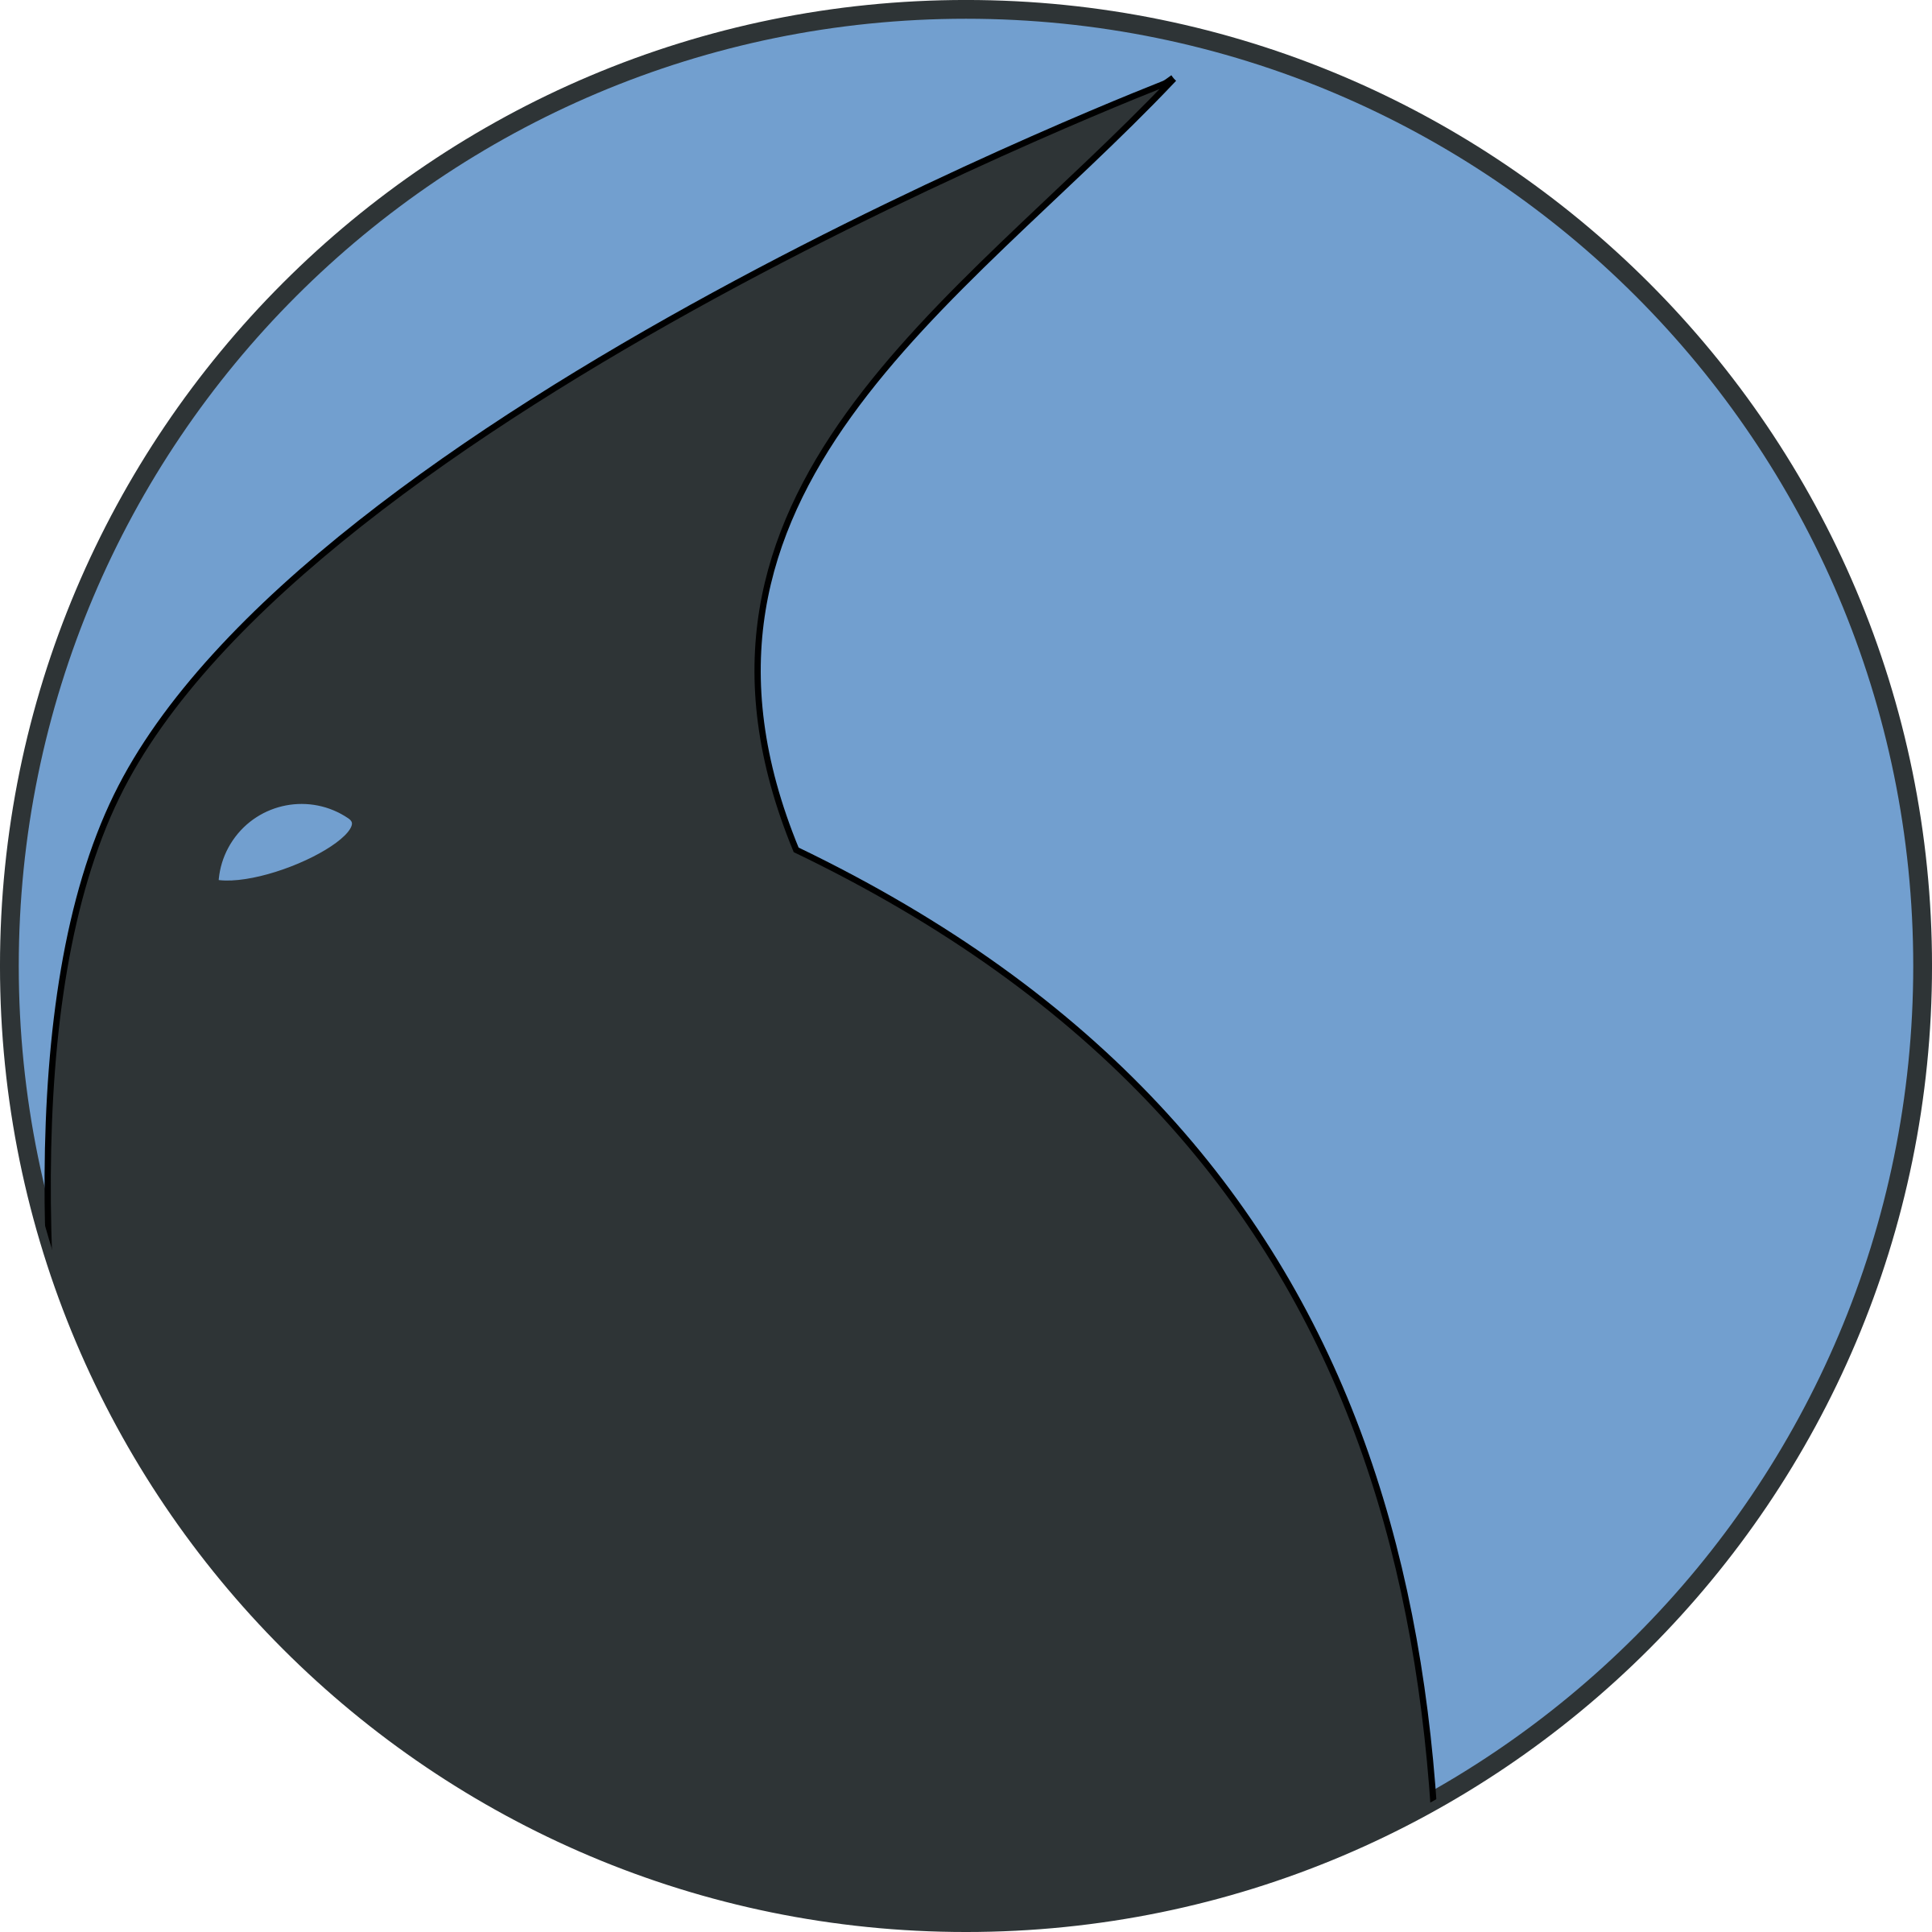 Penguin Profile Medalion by notKlaatu